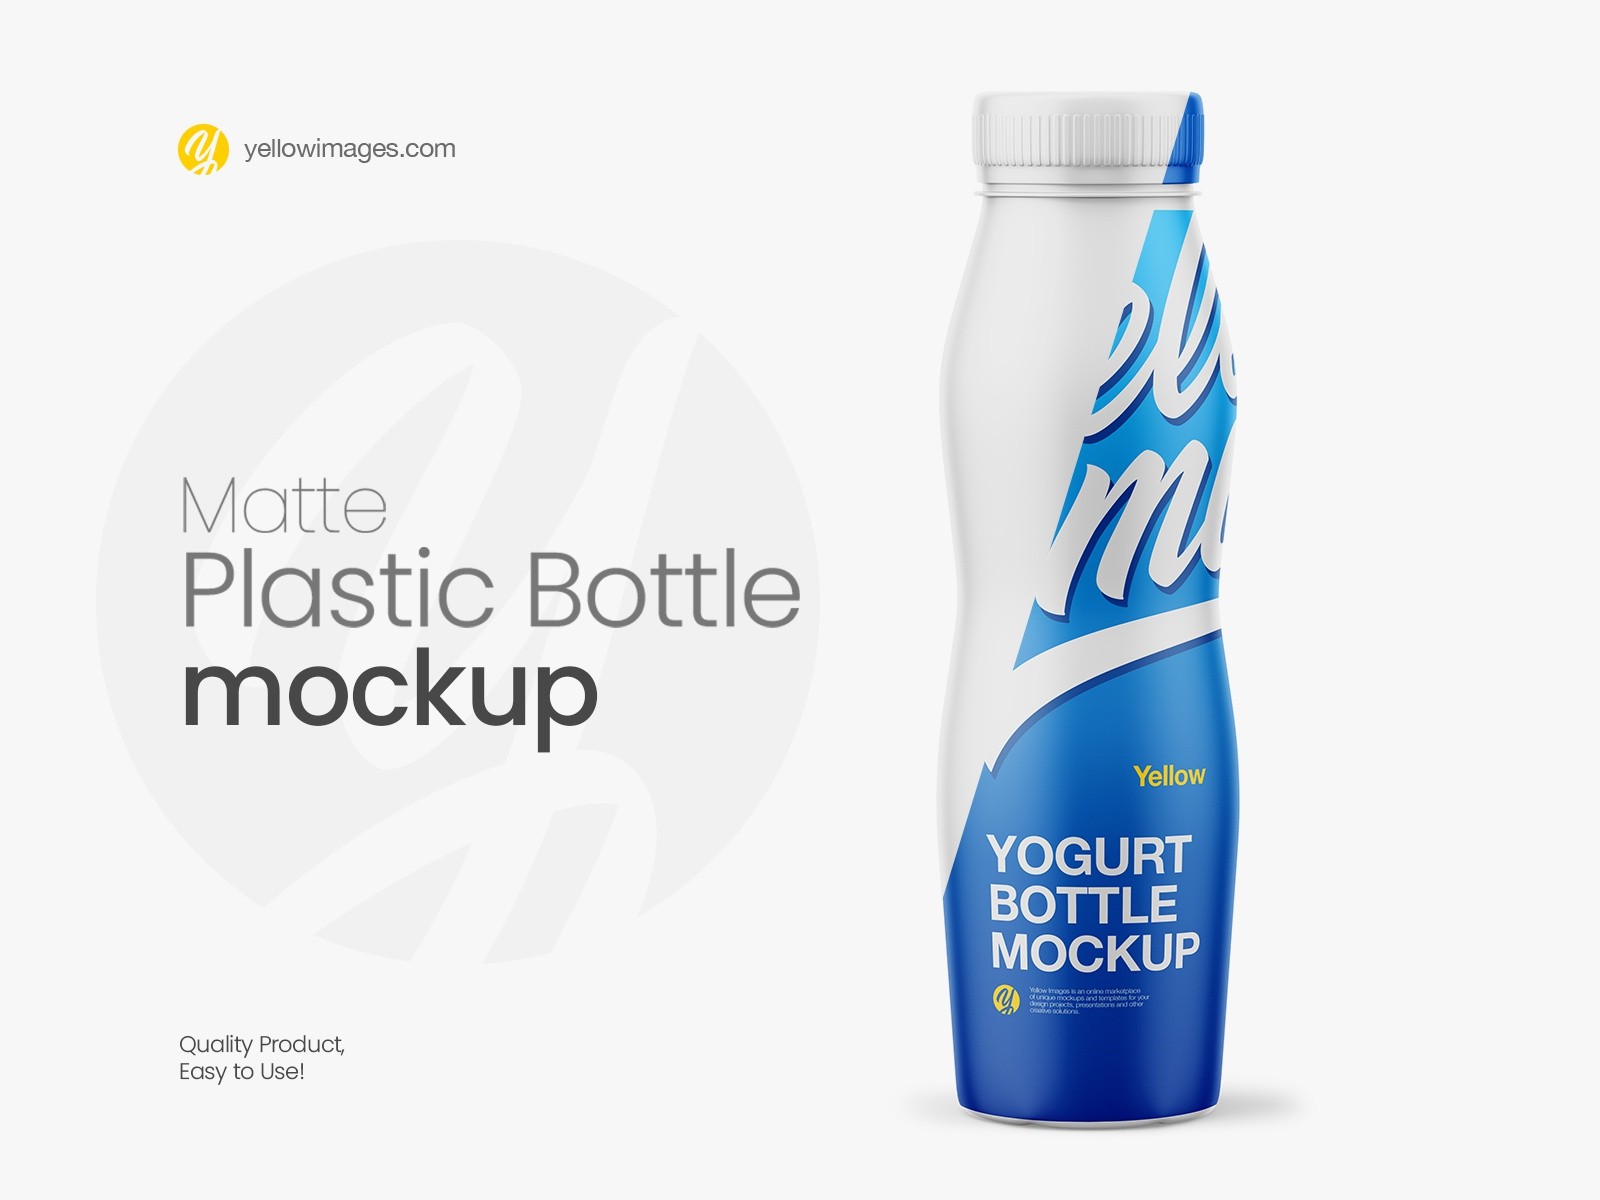 Download Matte Plastic Bottle Mockup Front View By Dmytro Ovcharenko On Dribbble PSD Mockup Templates